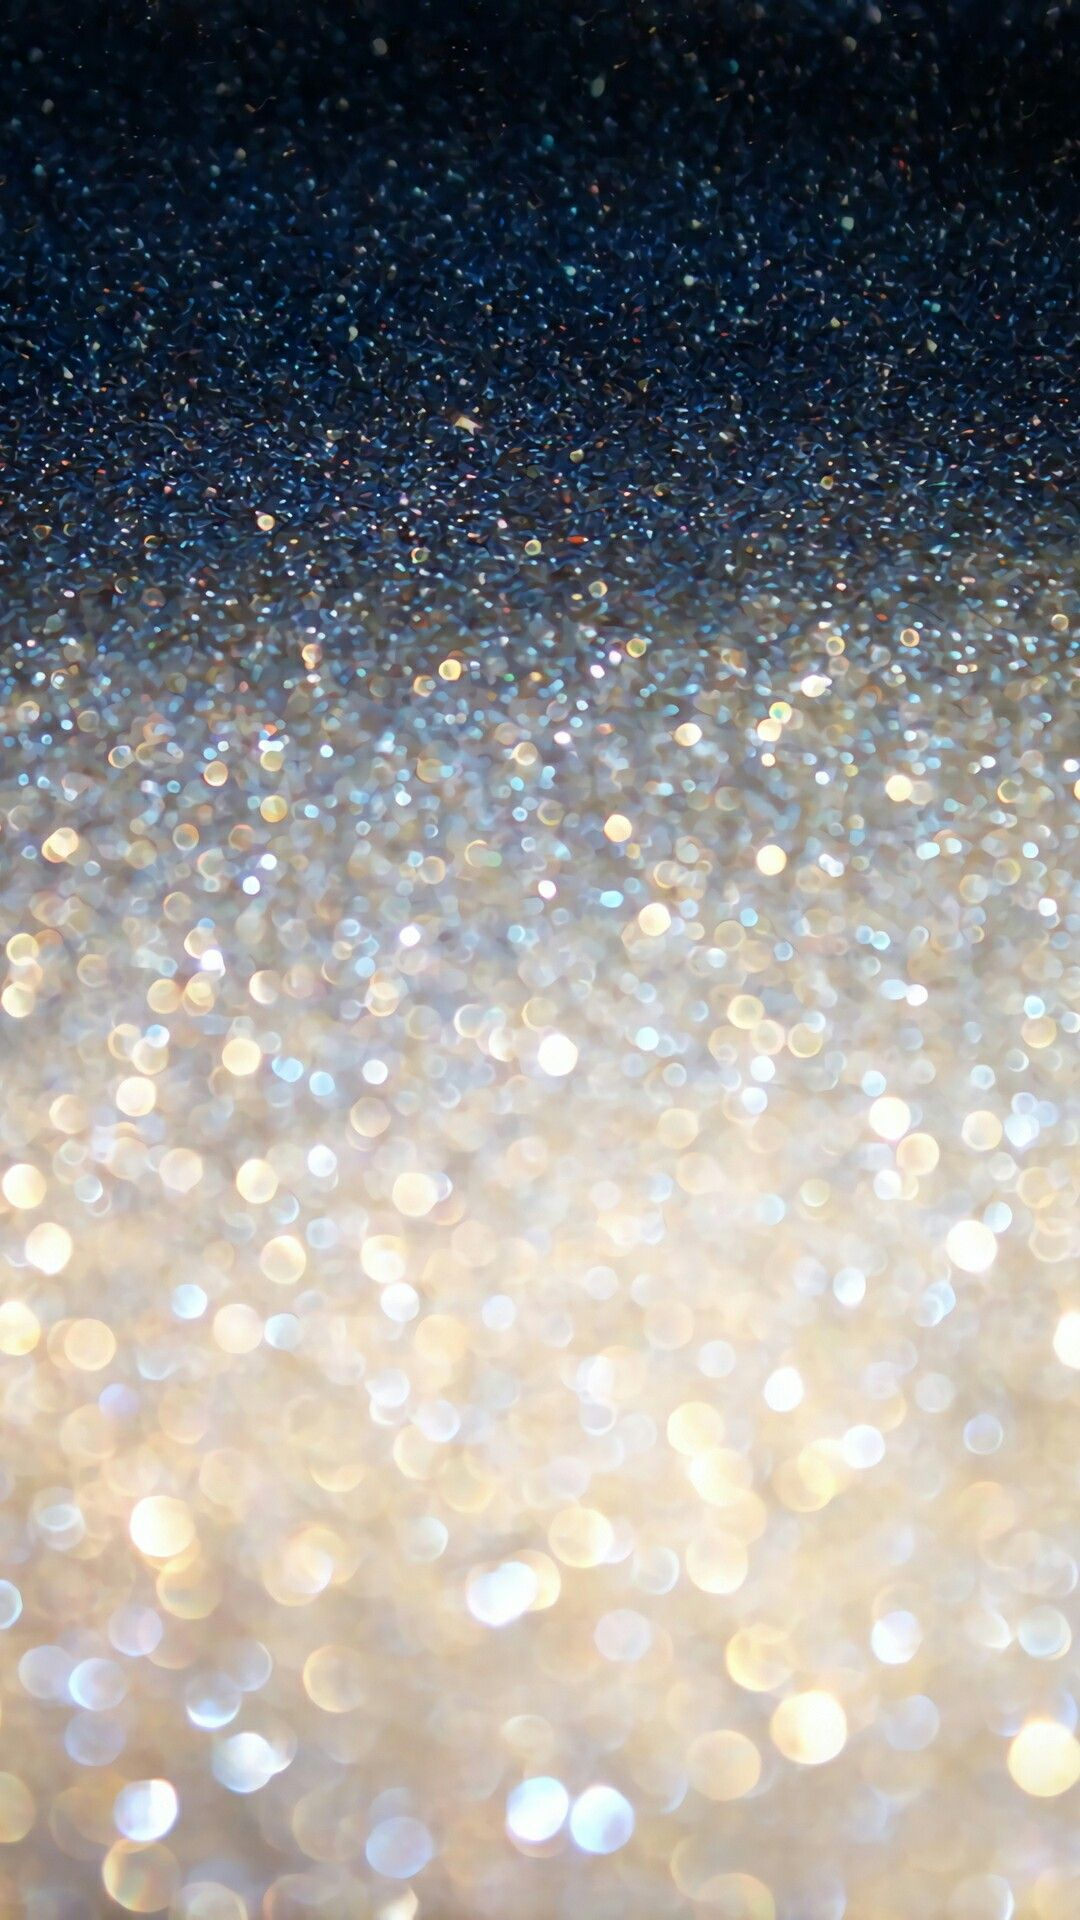 Ombre Glitter Wallpaper Hupages Download Iphone Wallpapers